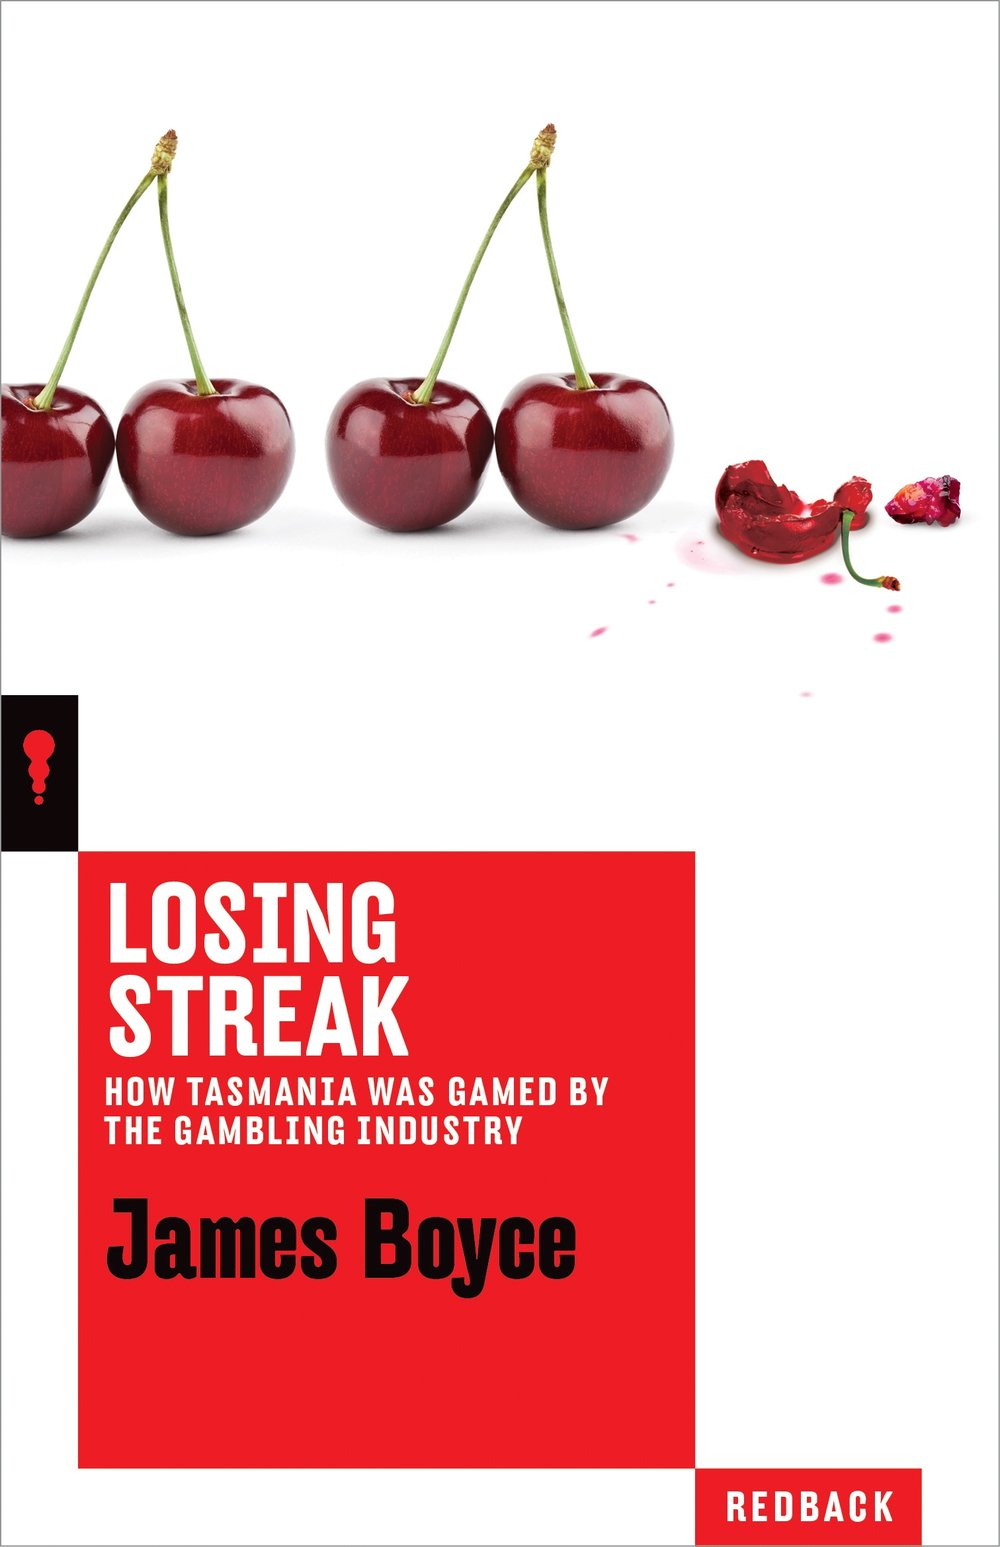 LOSING STREAK – JAMES BOYCE - A jaw-dropping account of how one company came to own every poker machine in the state of Tasmania – and the cost to democracy, the public purse and problem gamblers and their families.